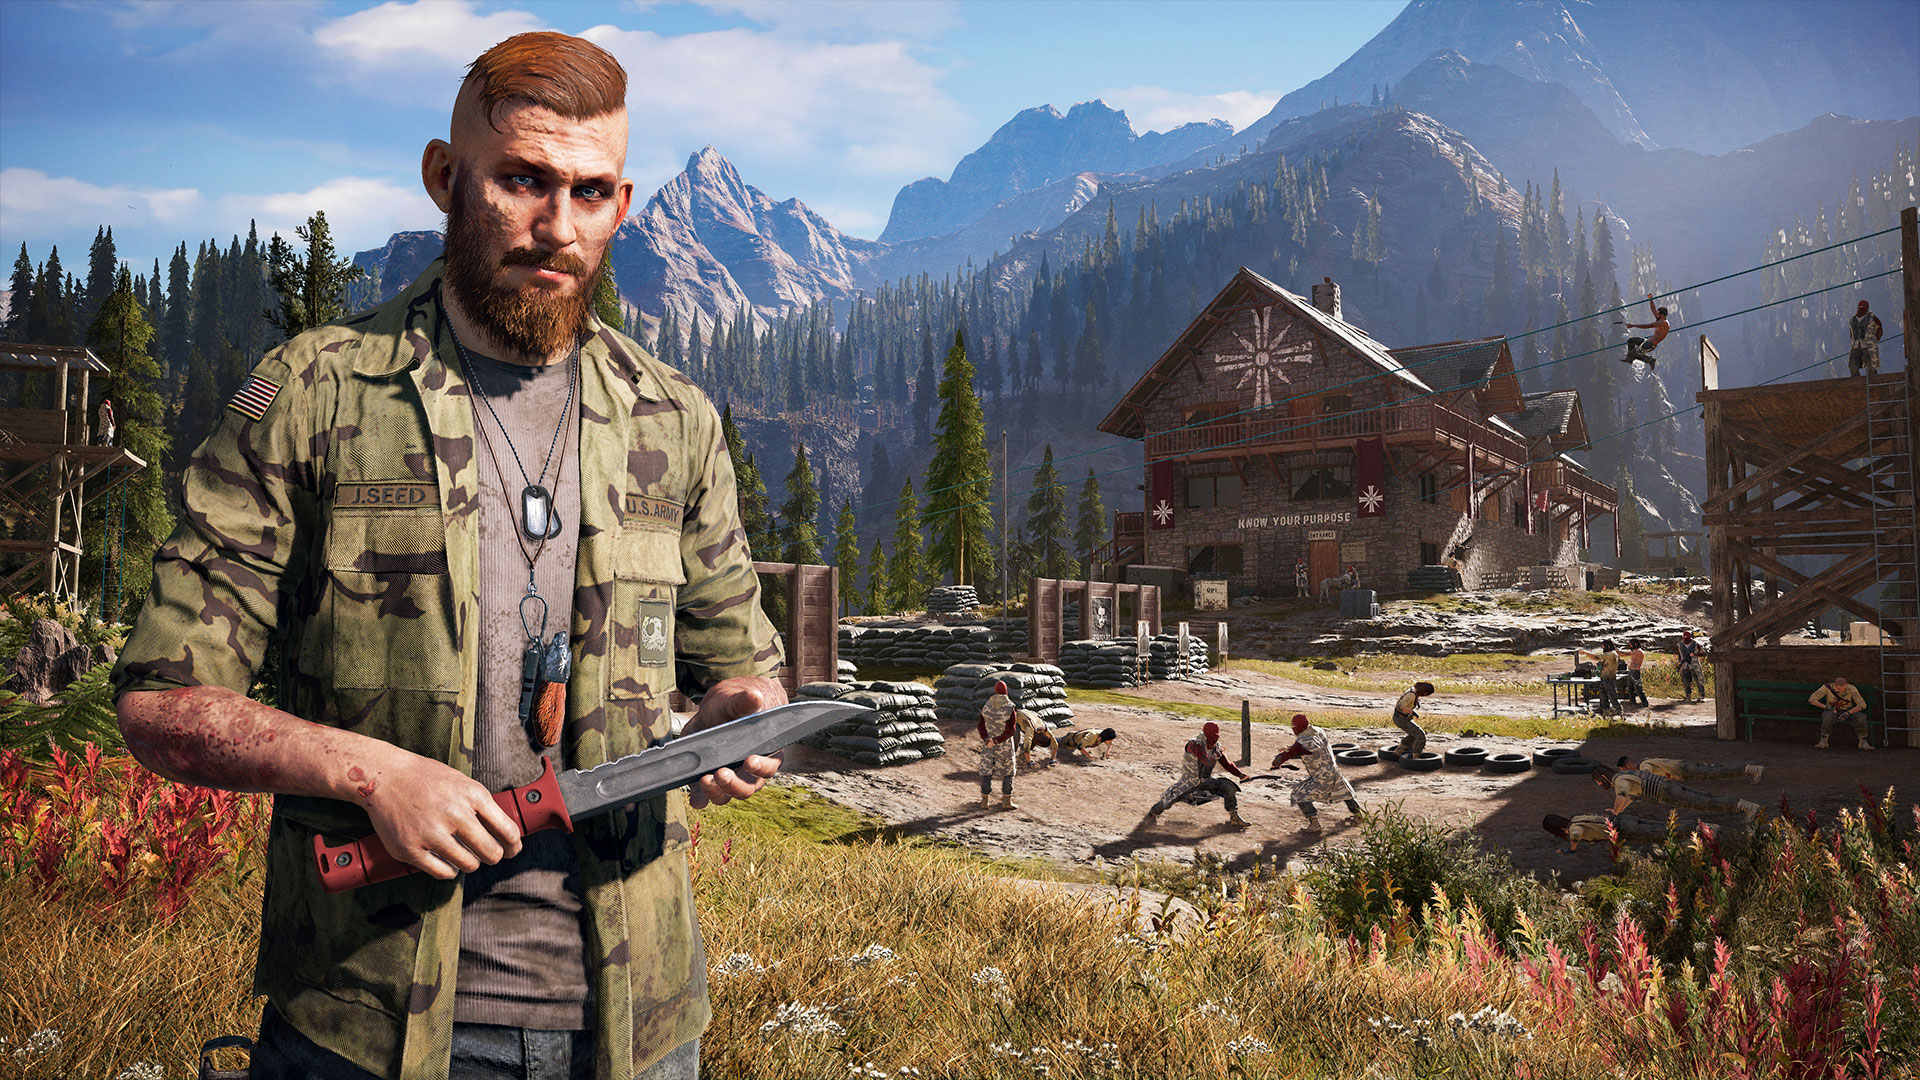 Far Cry 5 becomes fastest selling Far Cry title, second biggest Ubisoft launch